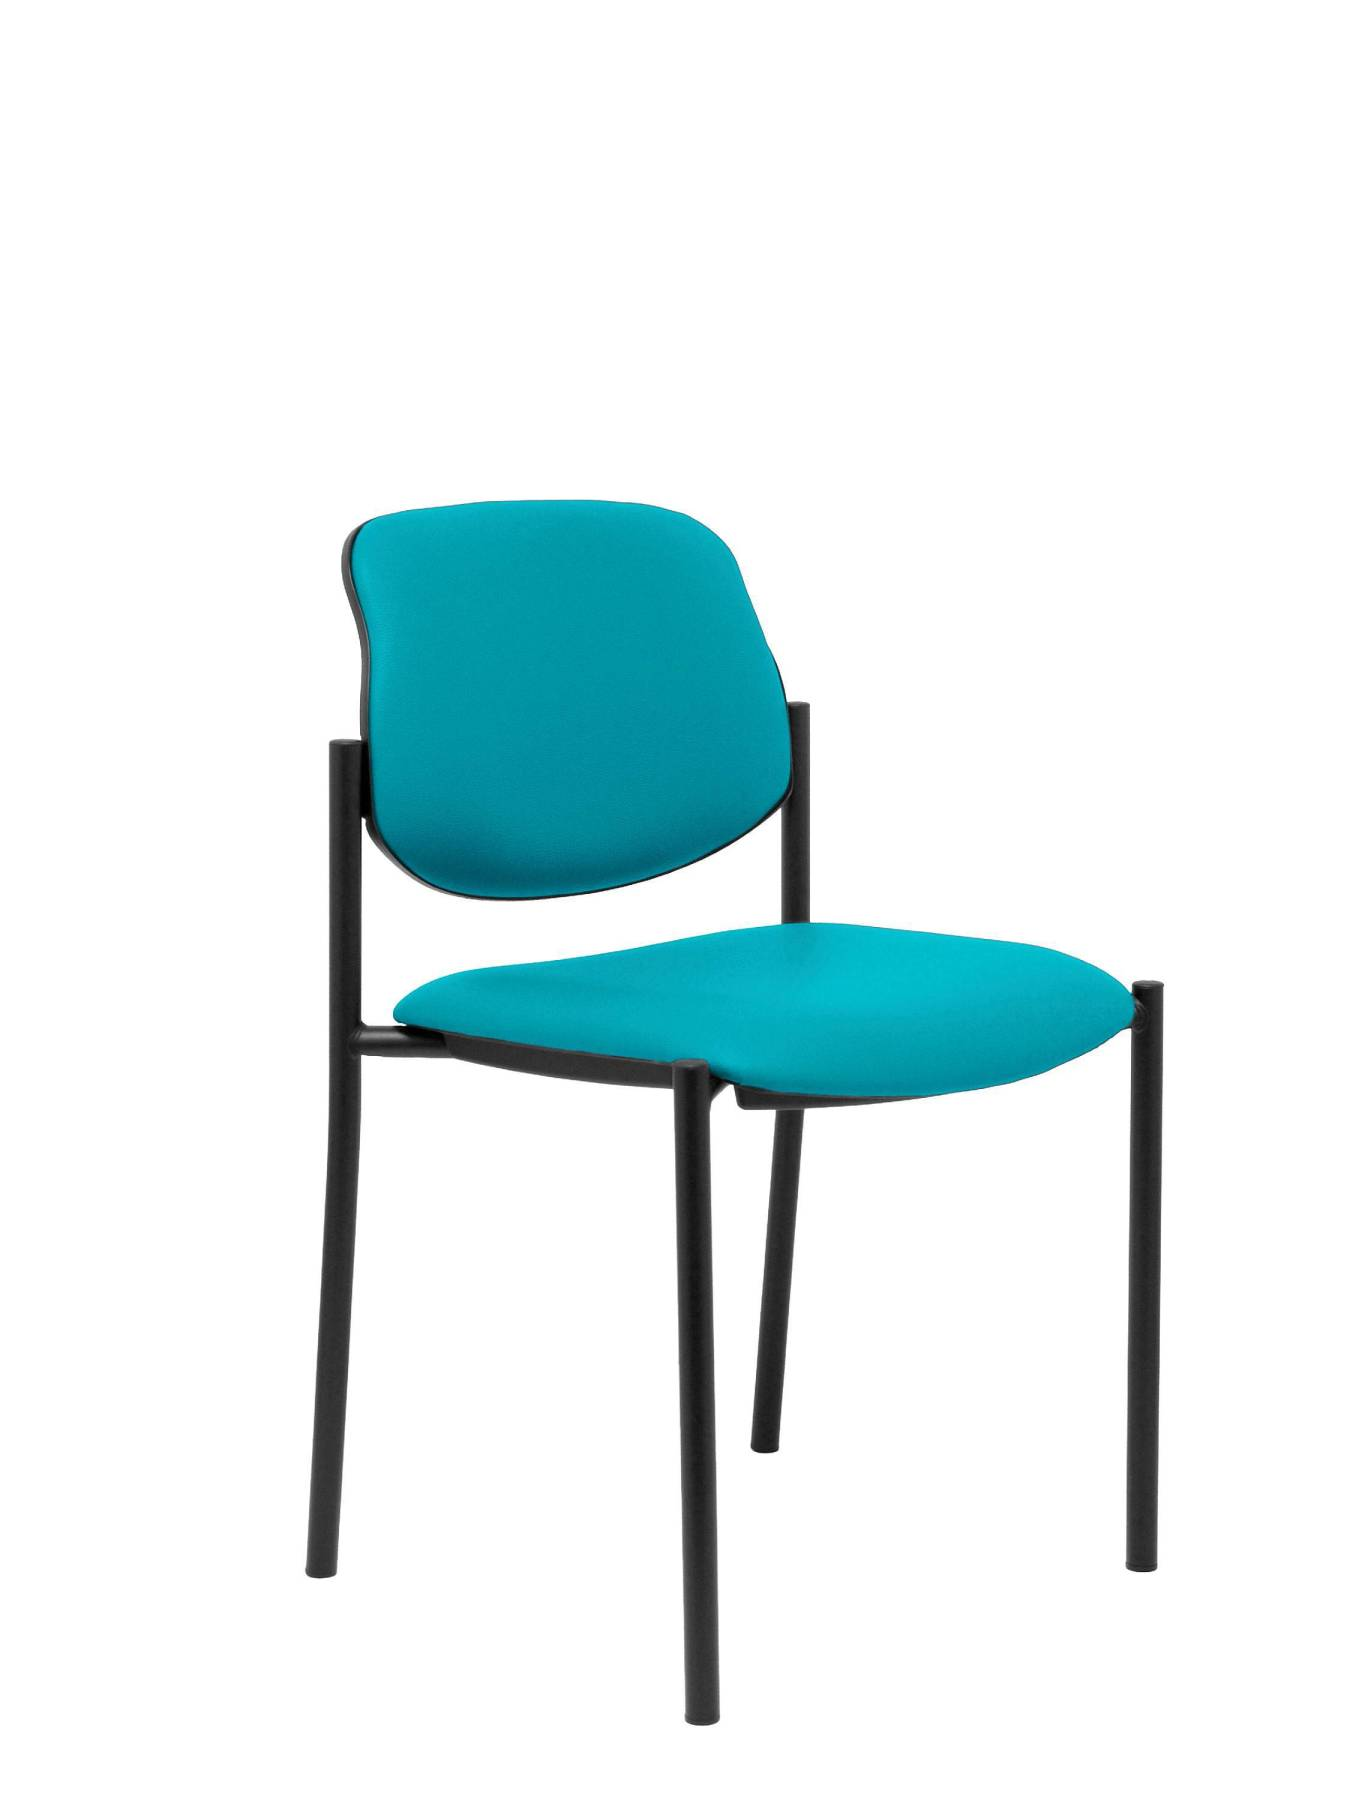 Visitor Chair 4's Topsy And Estructrua Negro-up Seat And Backstop Upholstered In Tissue Similpiel Green Color TAPHOLE AND